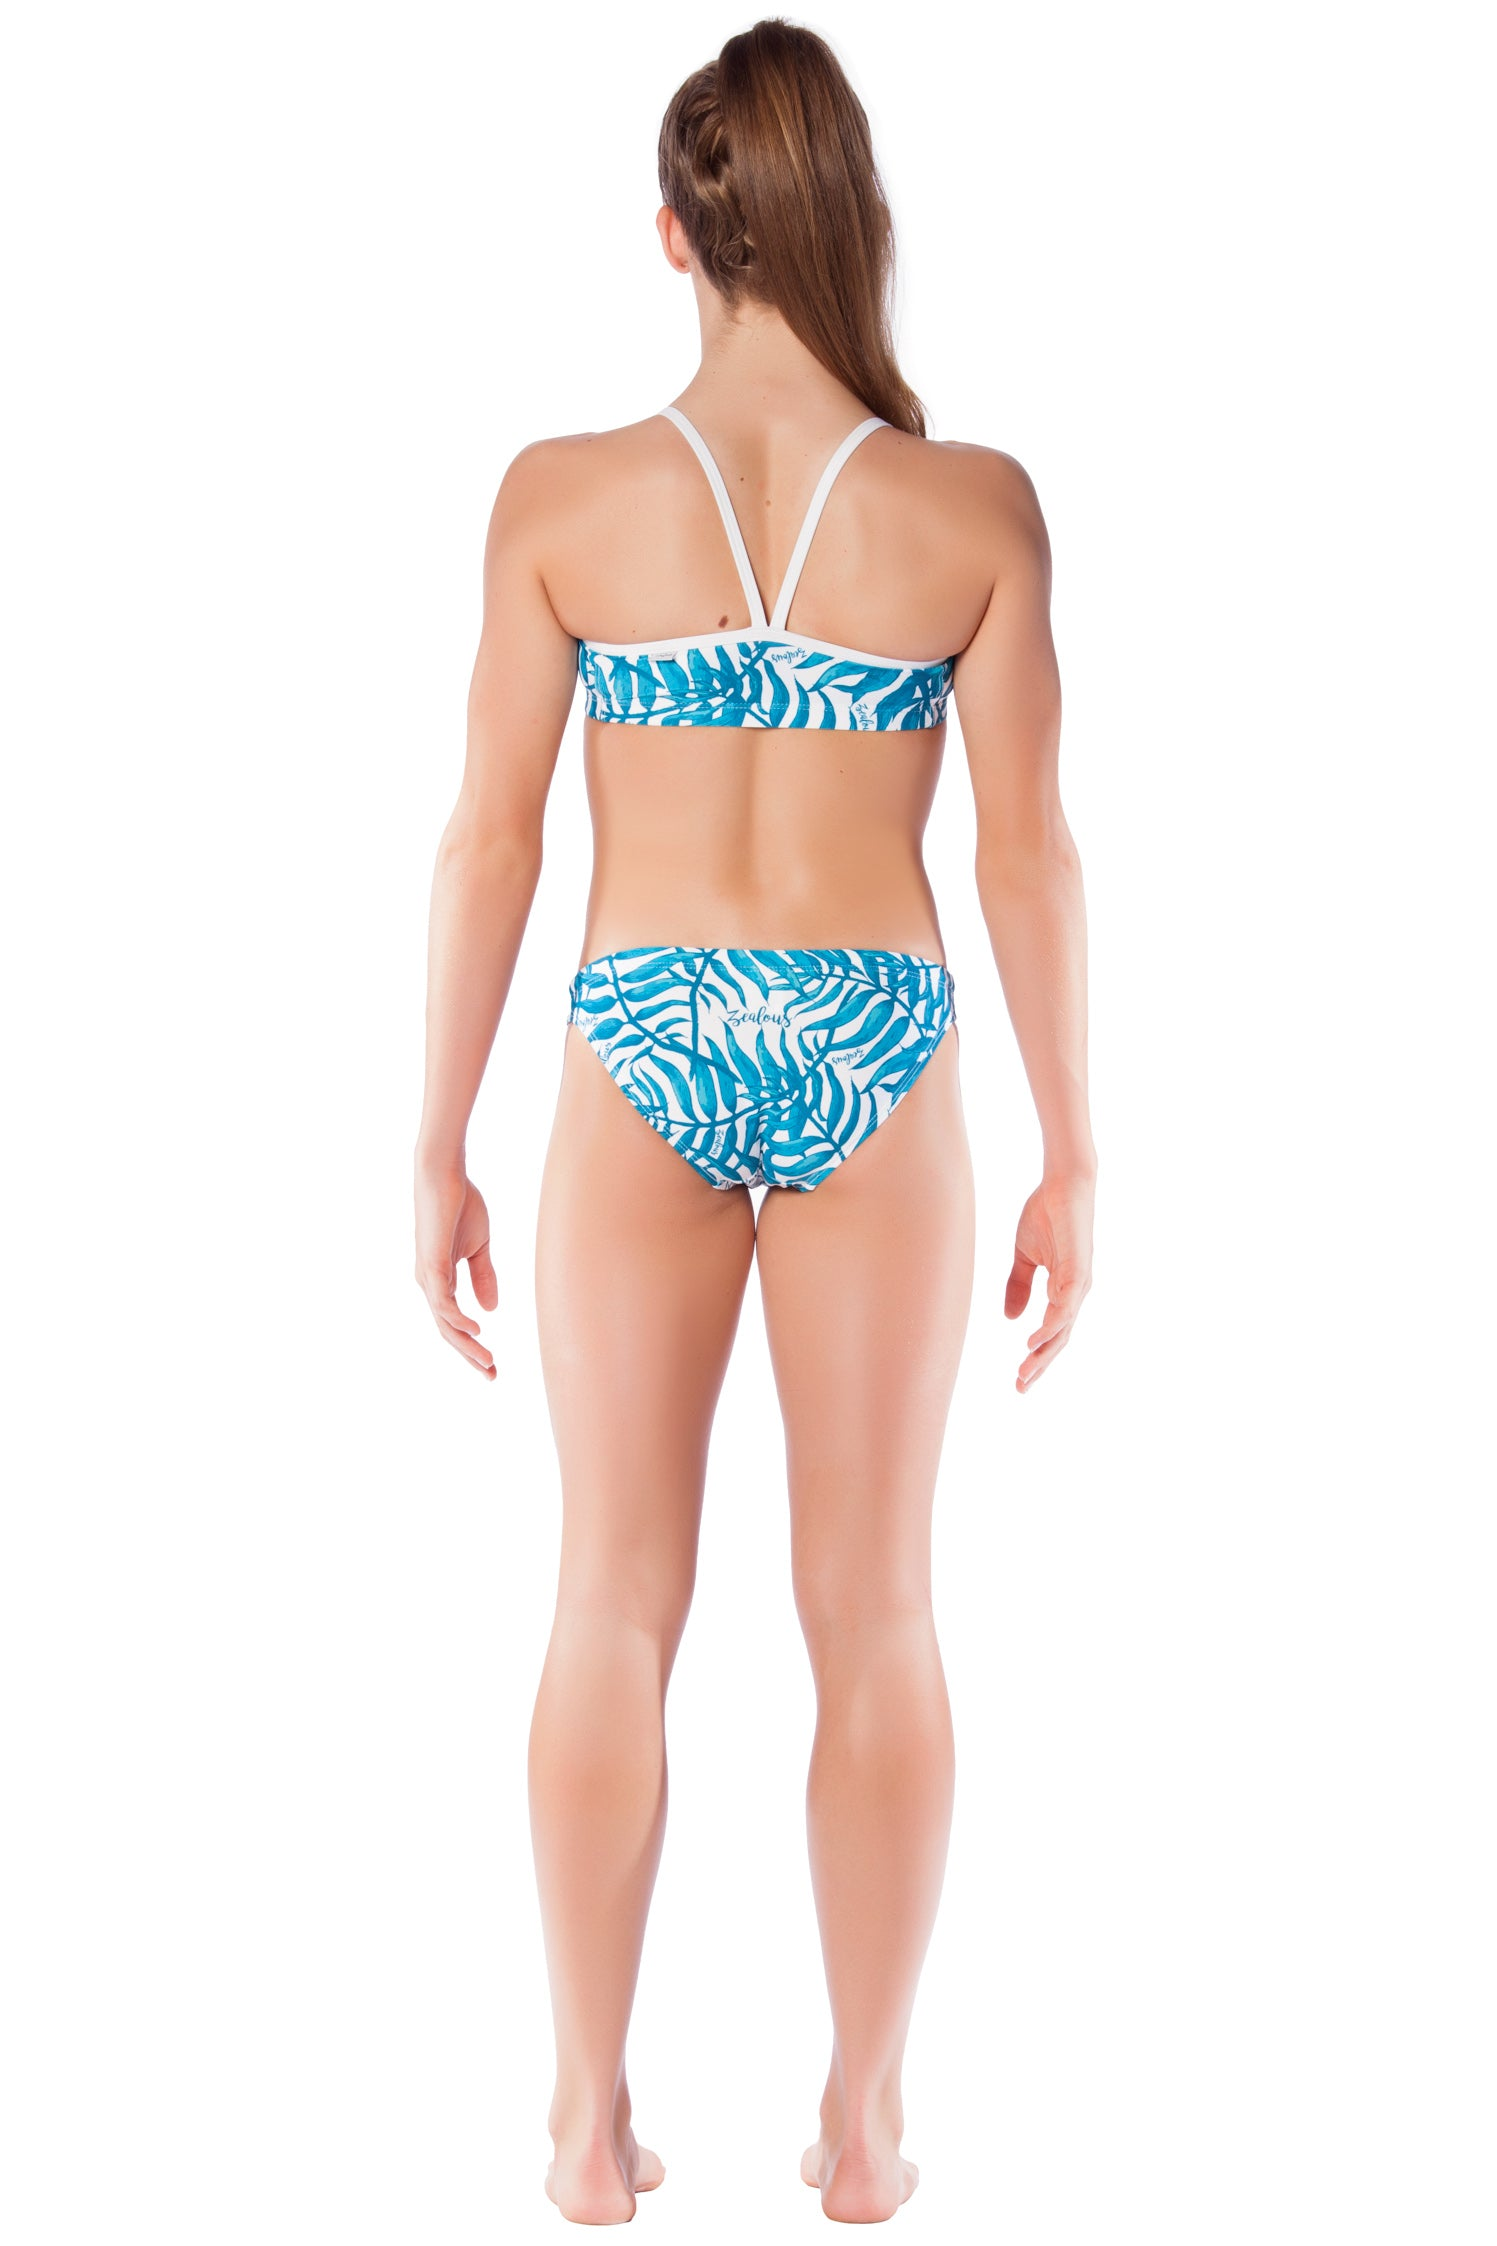 Blue Haven Girls Two Piece - Shop Zealous Training Swimwear